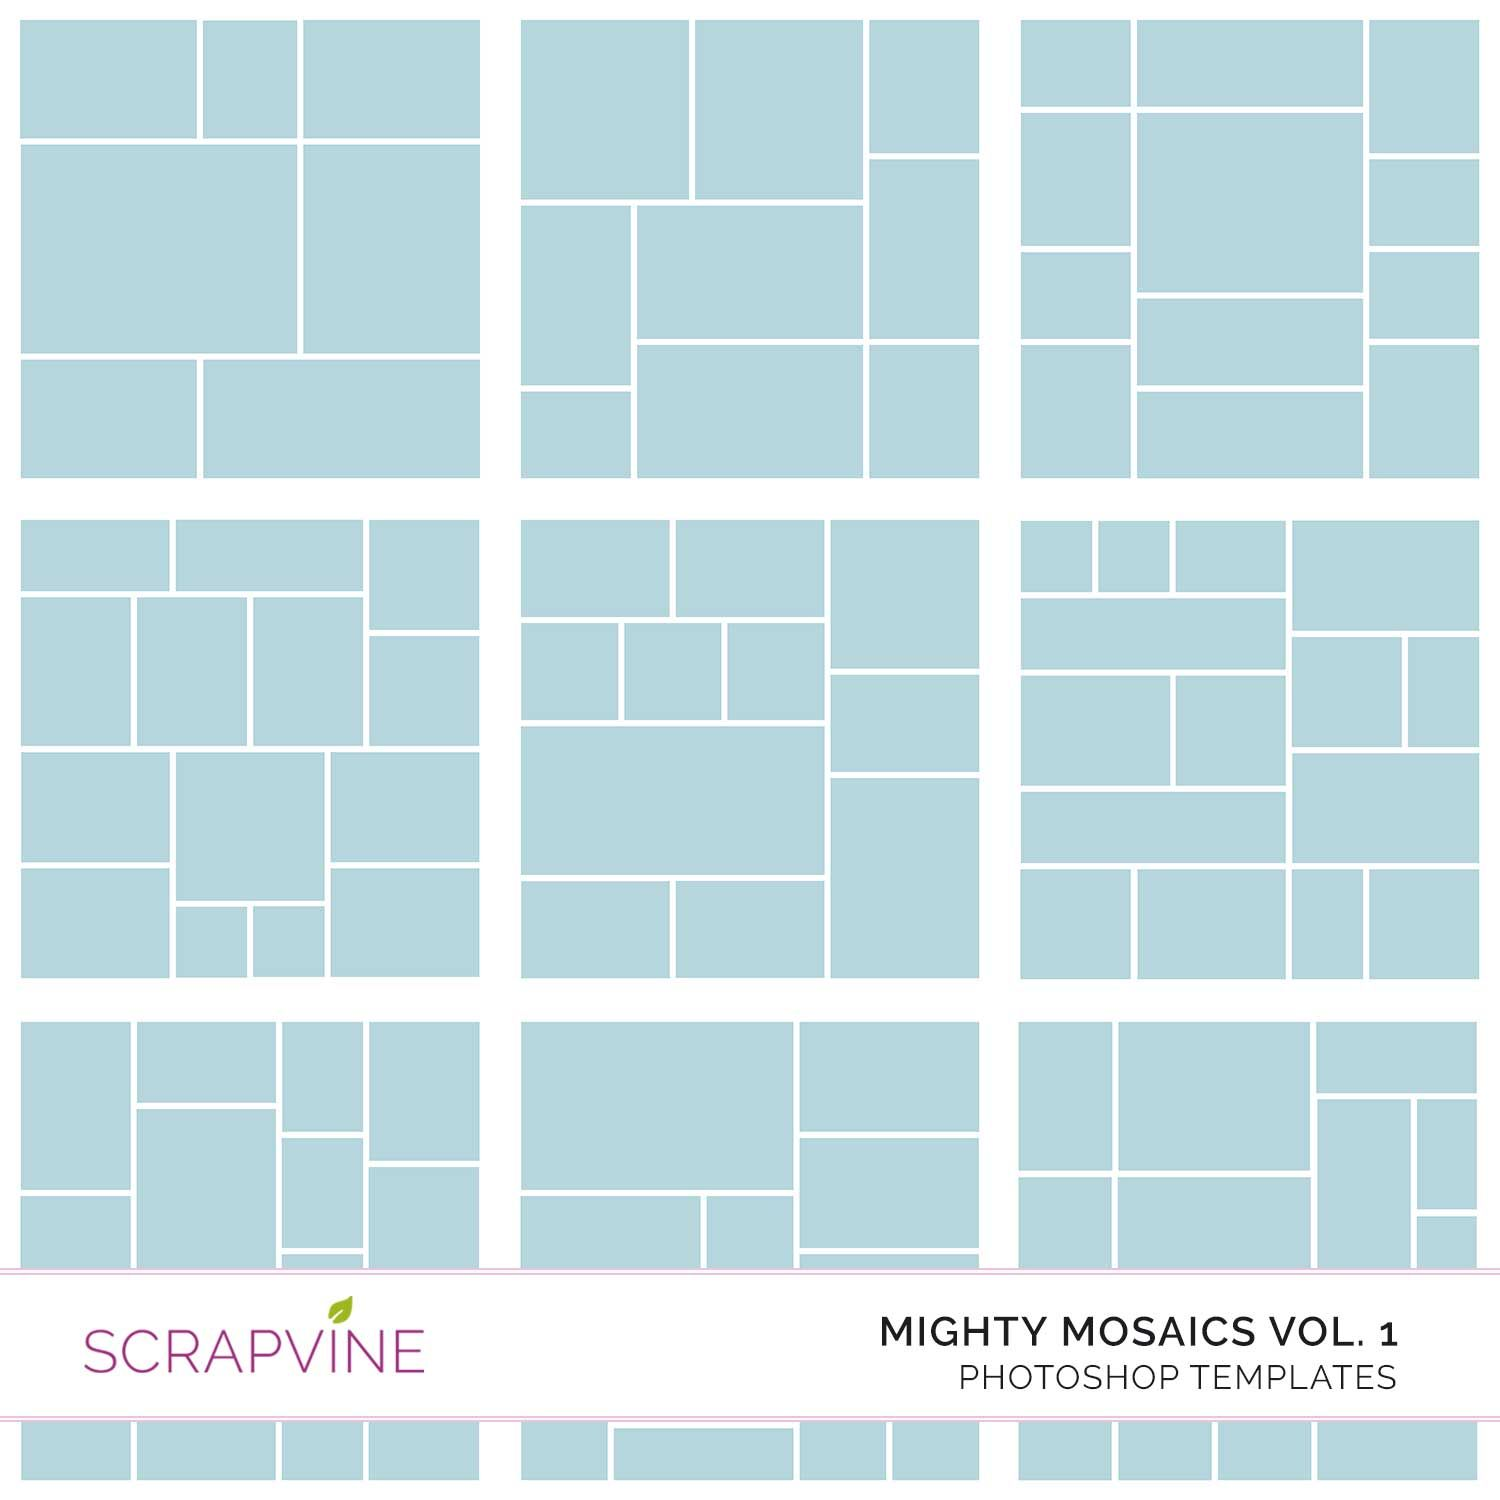 Mighty Mosaics shop Templates